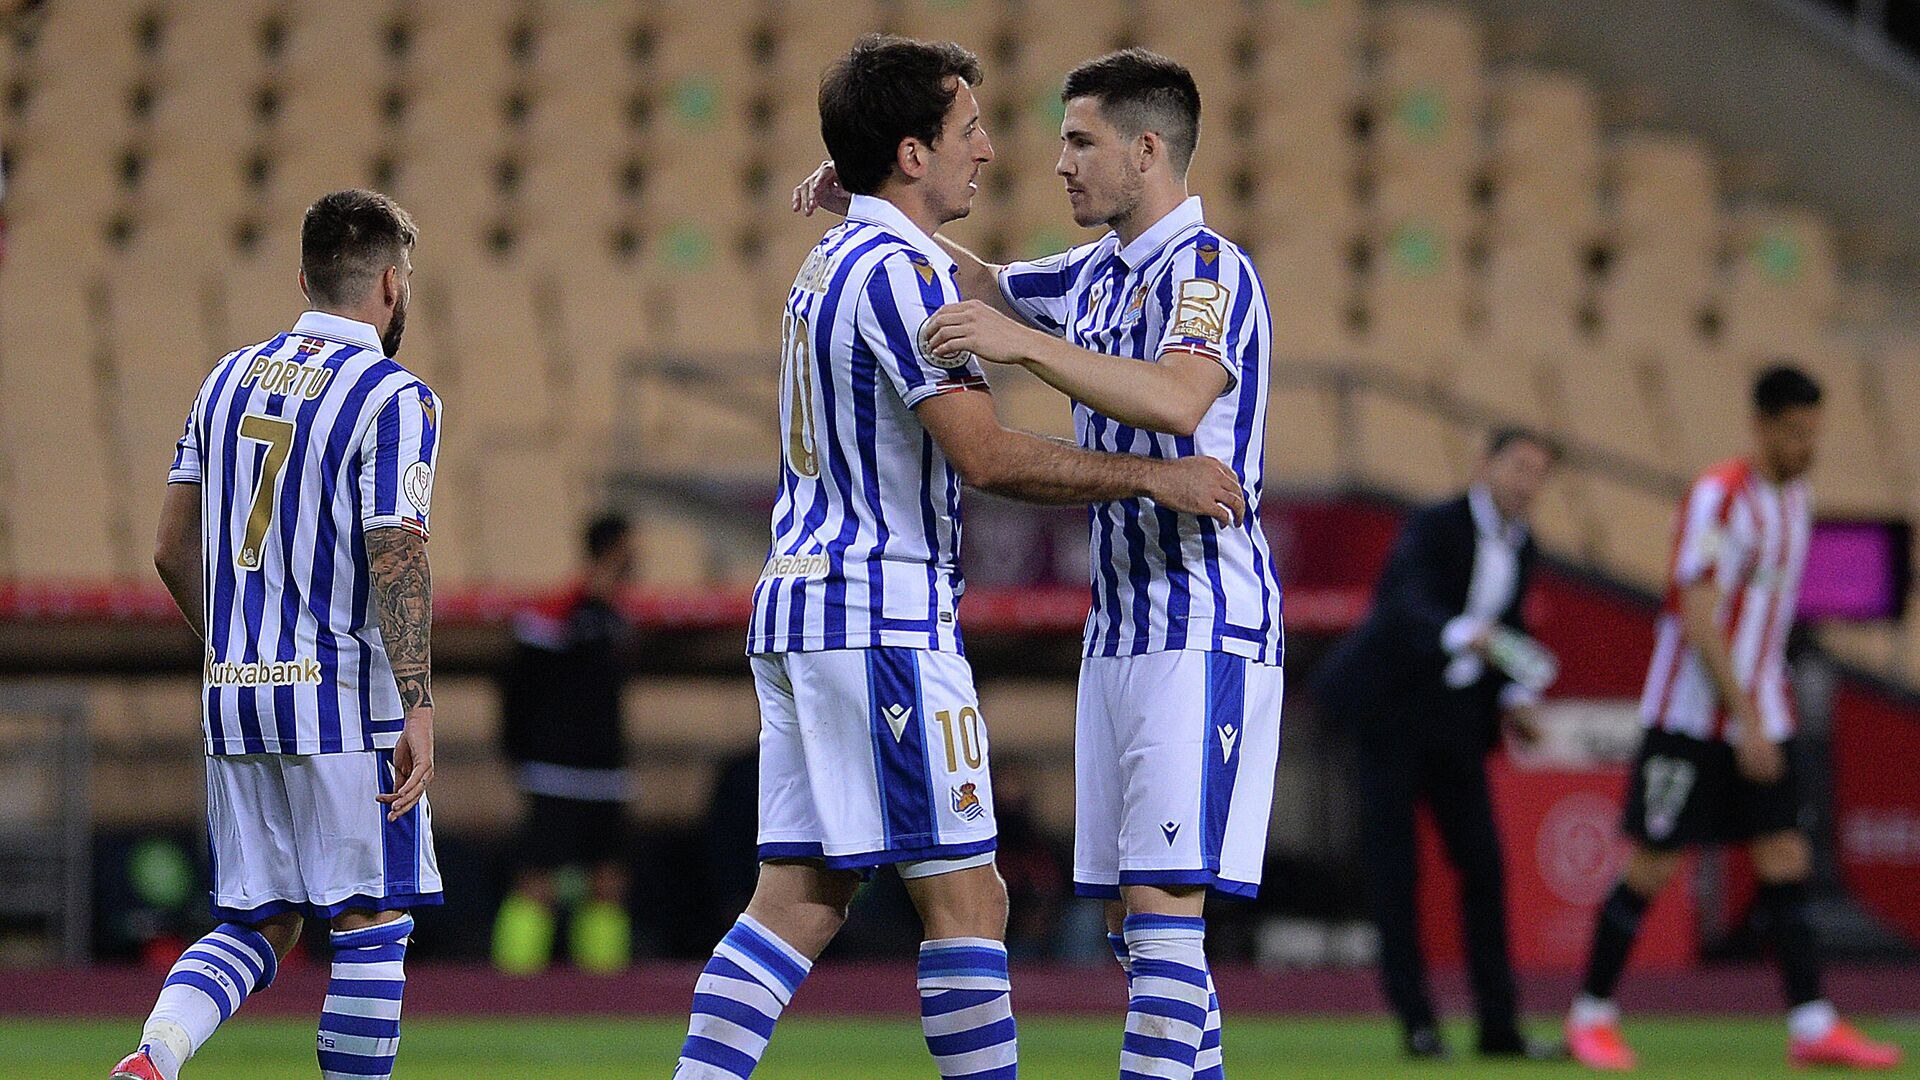 Real Sociedad's Spanish midfielder Mikel Oyarzabal (C) celebrates with Real Sociedad's Spanish midfielder Igor Zubeldia (R) after scoring a goal during the 2020 Spanish Copa del Rey (King's Cup) final football match between Athletic Bilbao and Real Sociedad at La Cartuja stadium in Sevilla on April 3, 2021. (Photo by CRISTINA QUICLER / AFP) - РИА Новости, 1920, 04.04.2021